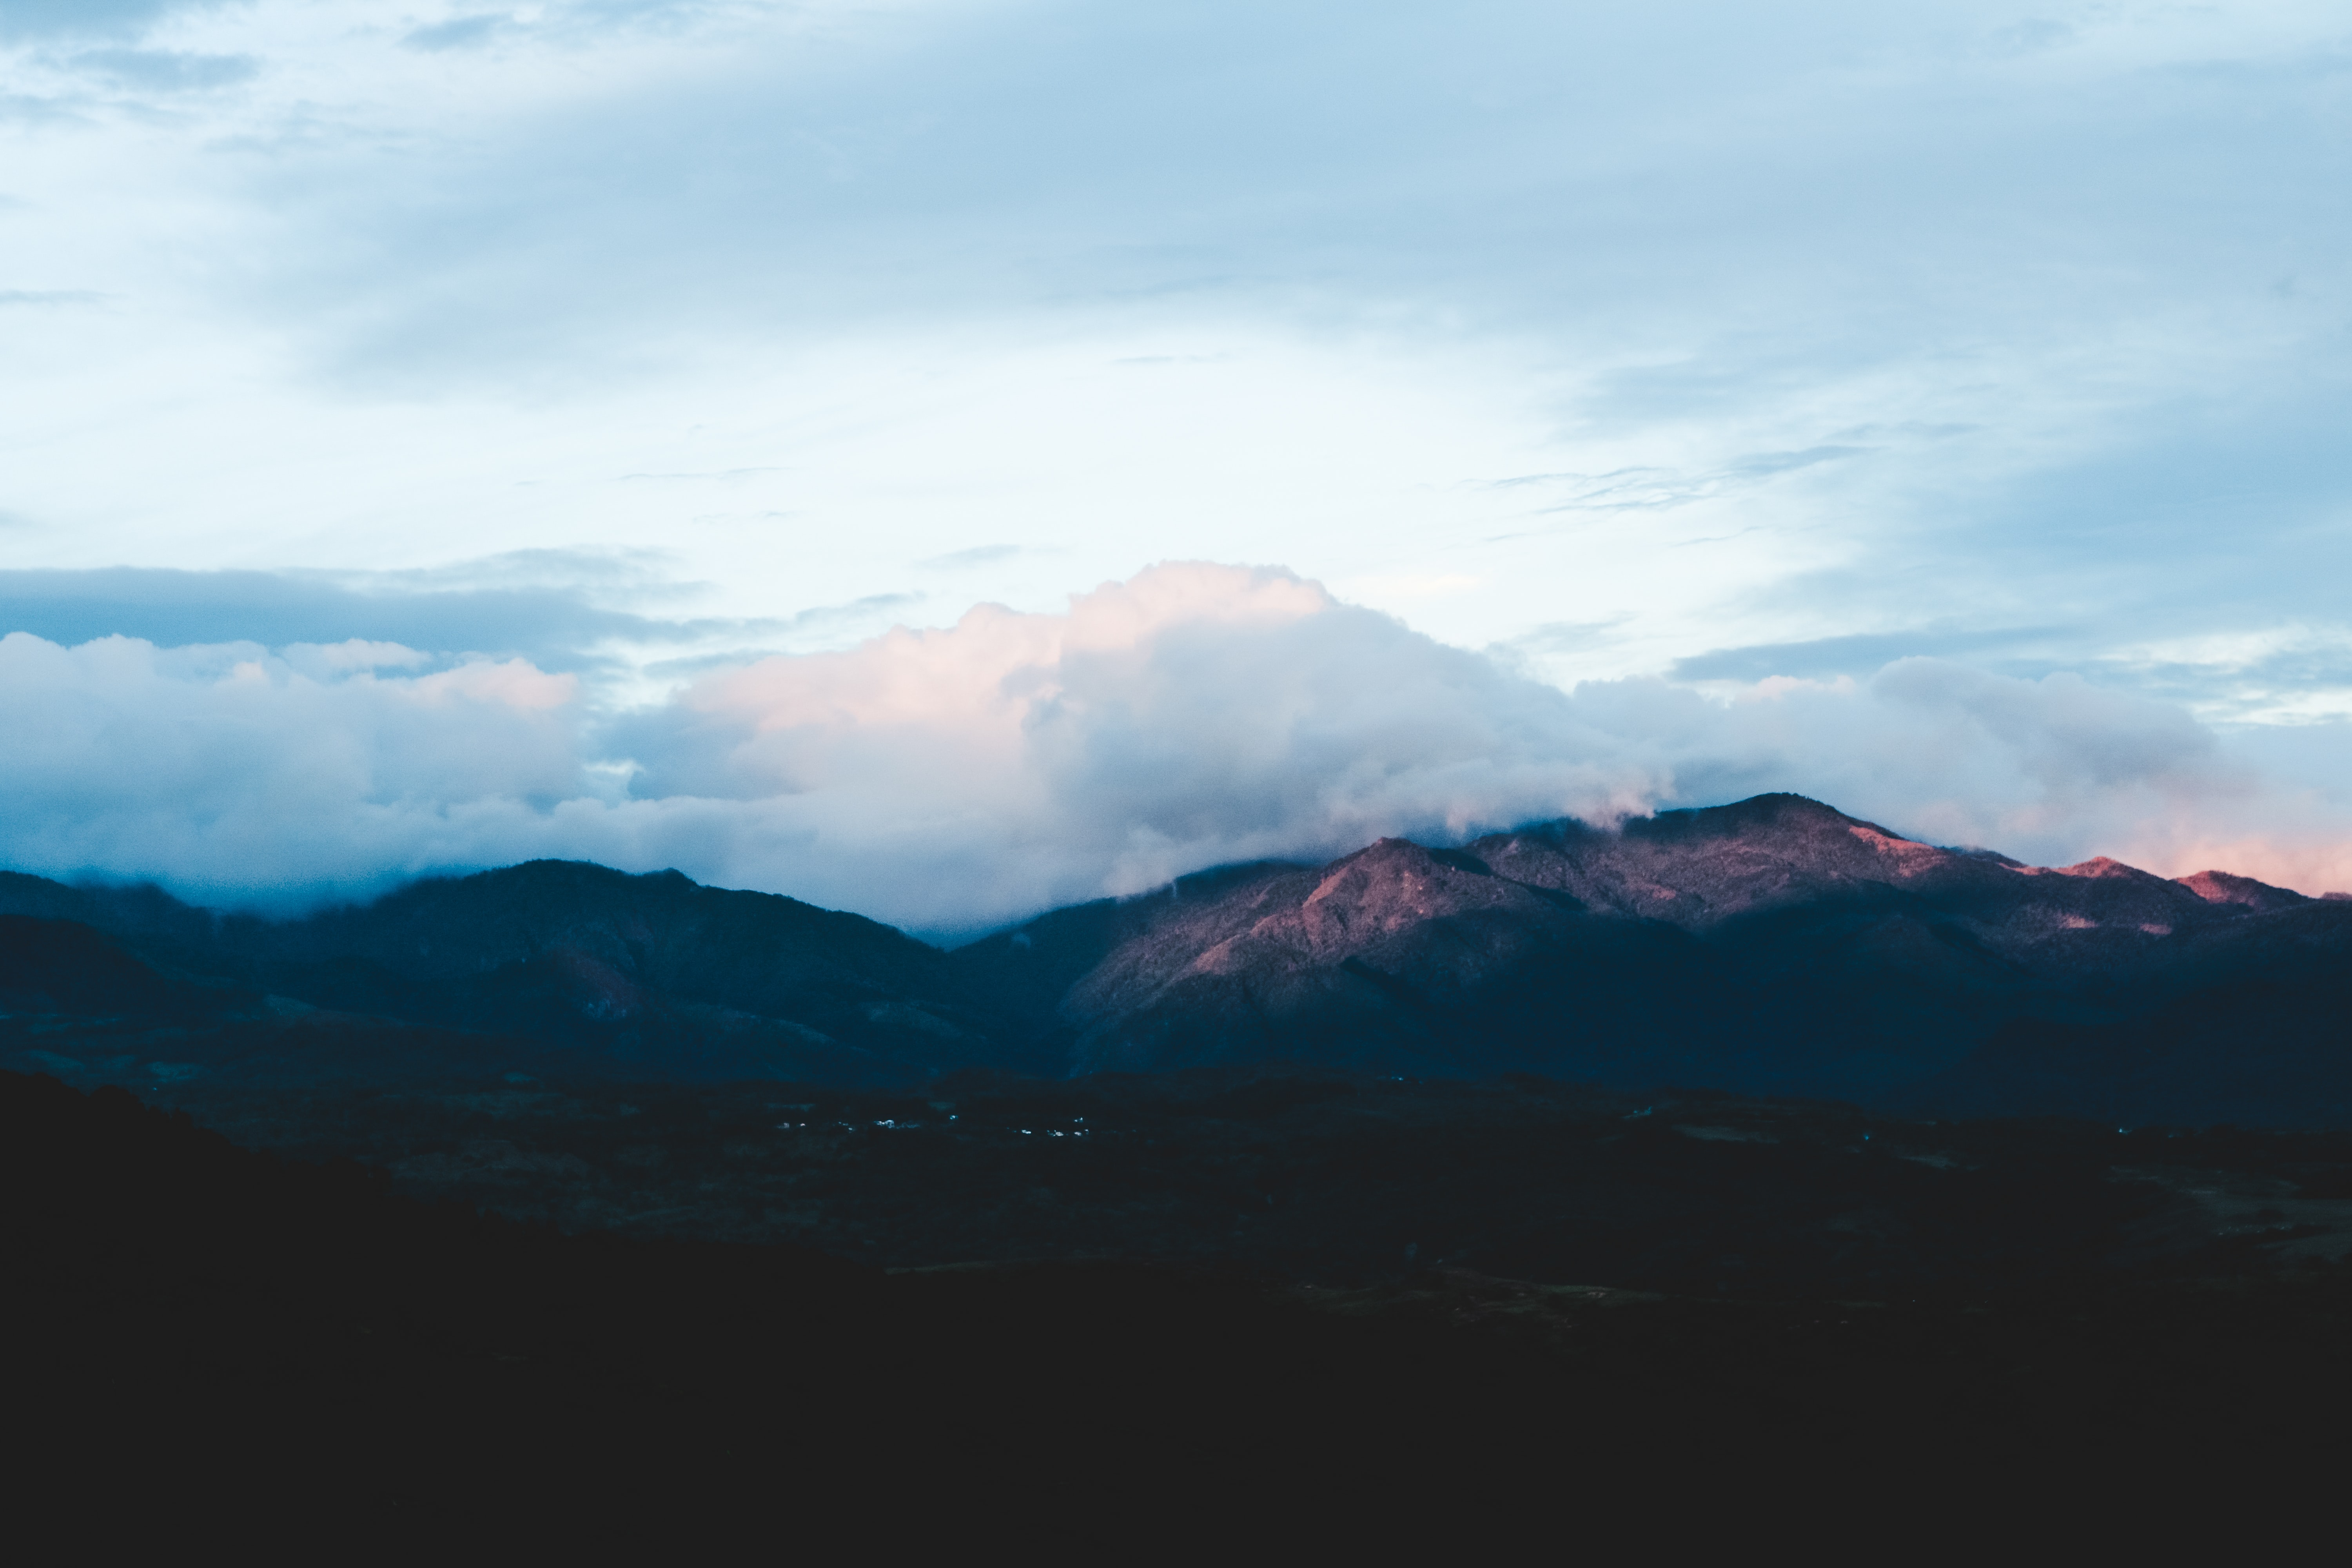 landscape photo of mountains under white clouds